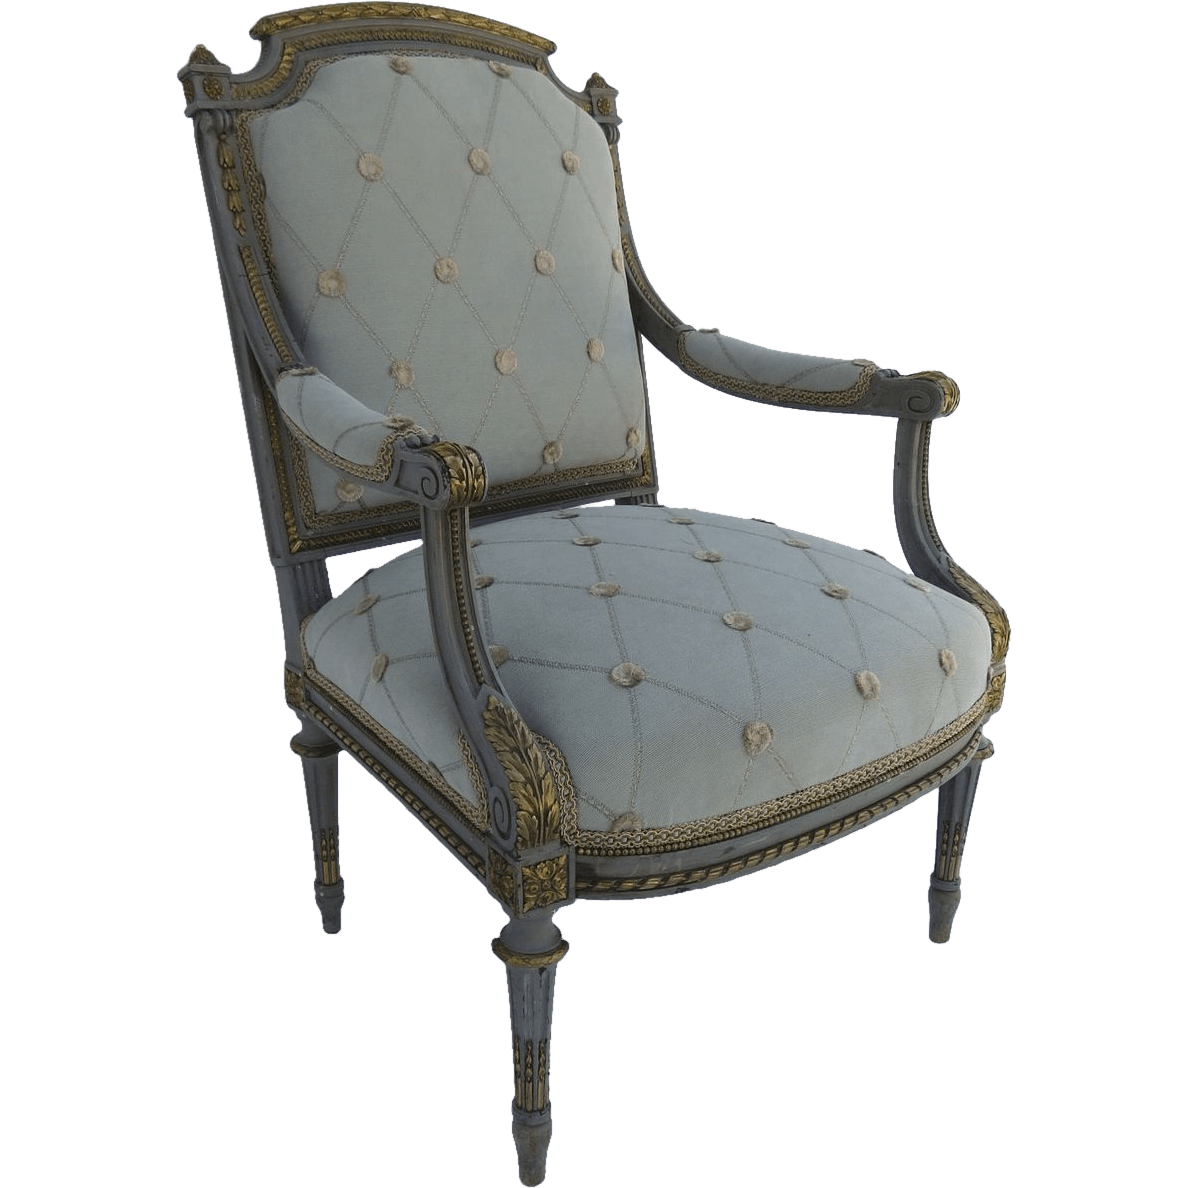 french louis chair discount camping chairs xvi style painted arm with ormolu